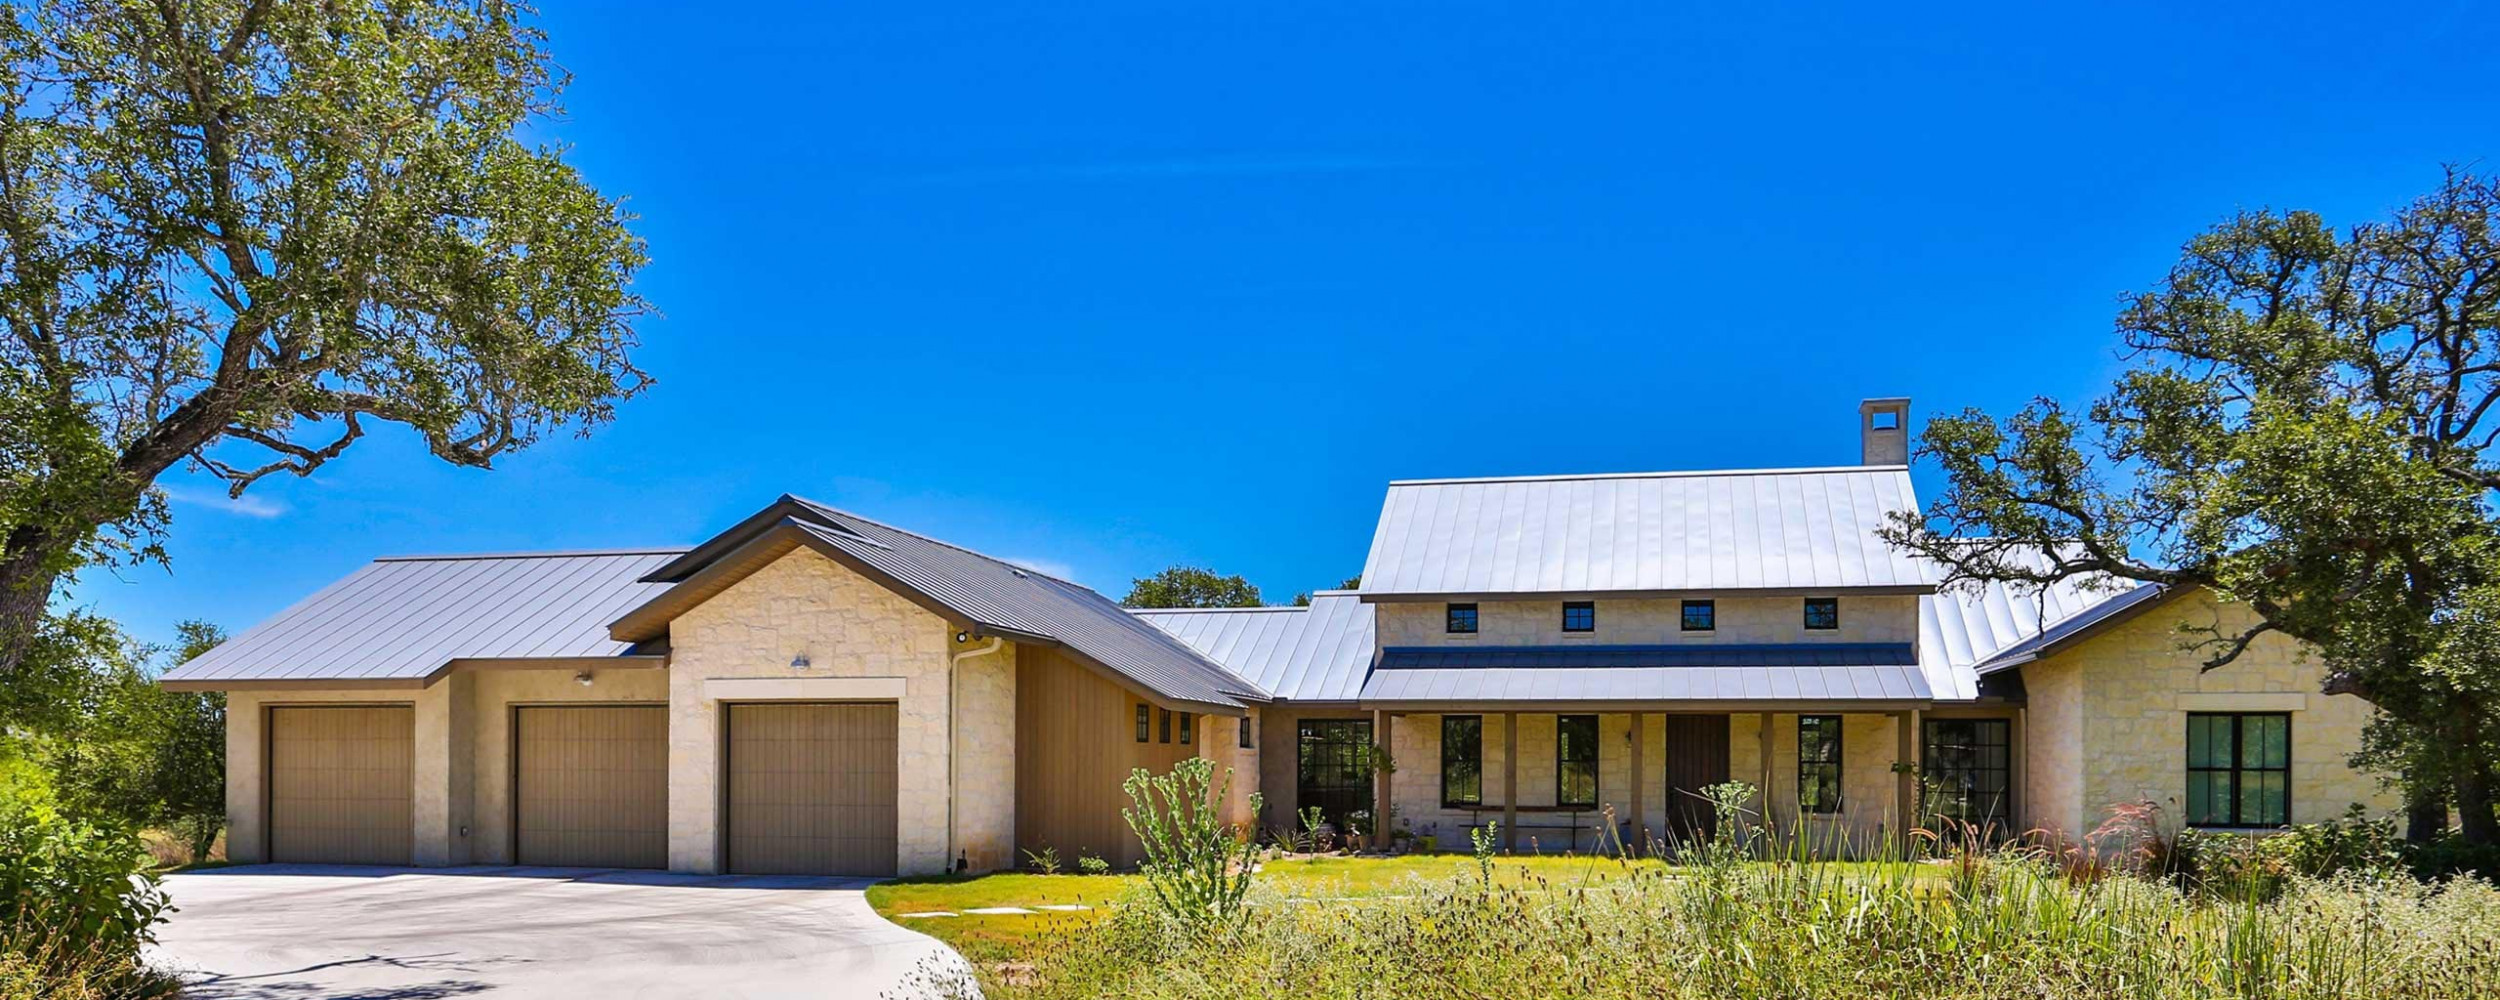 Welcome To Texas Home Plans Llc Tx